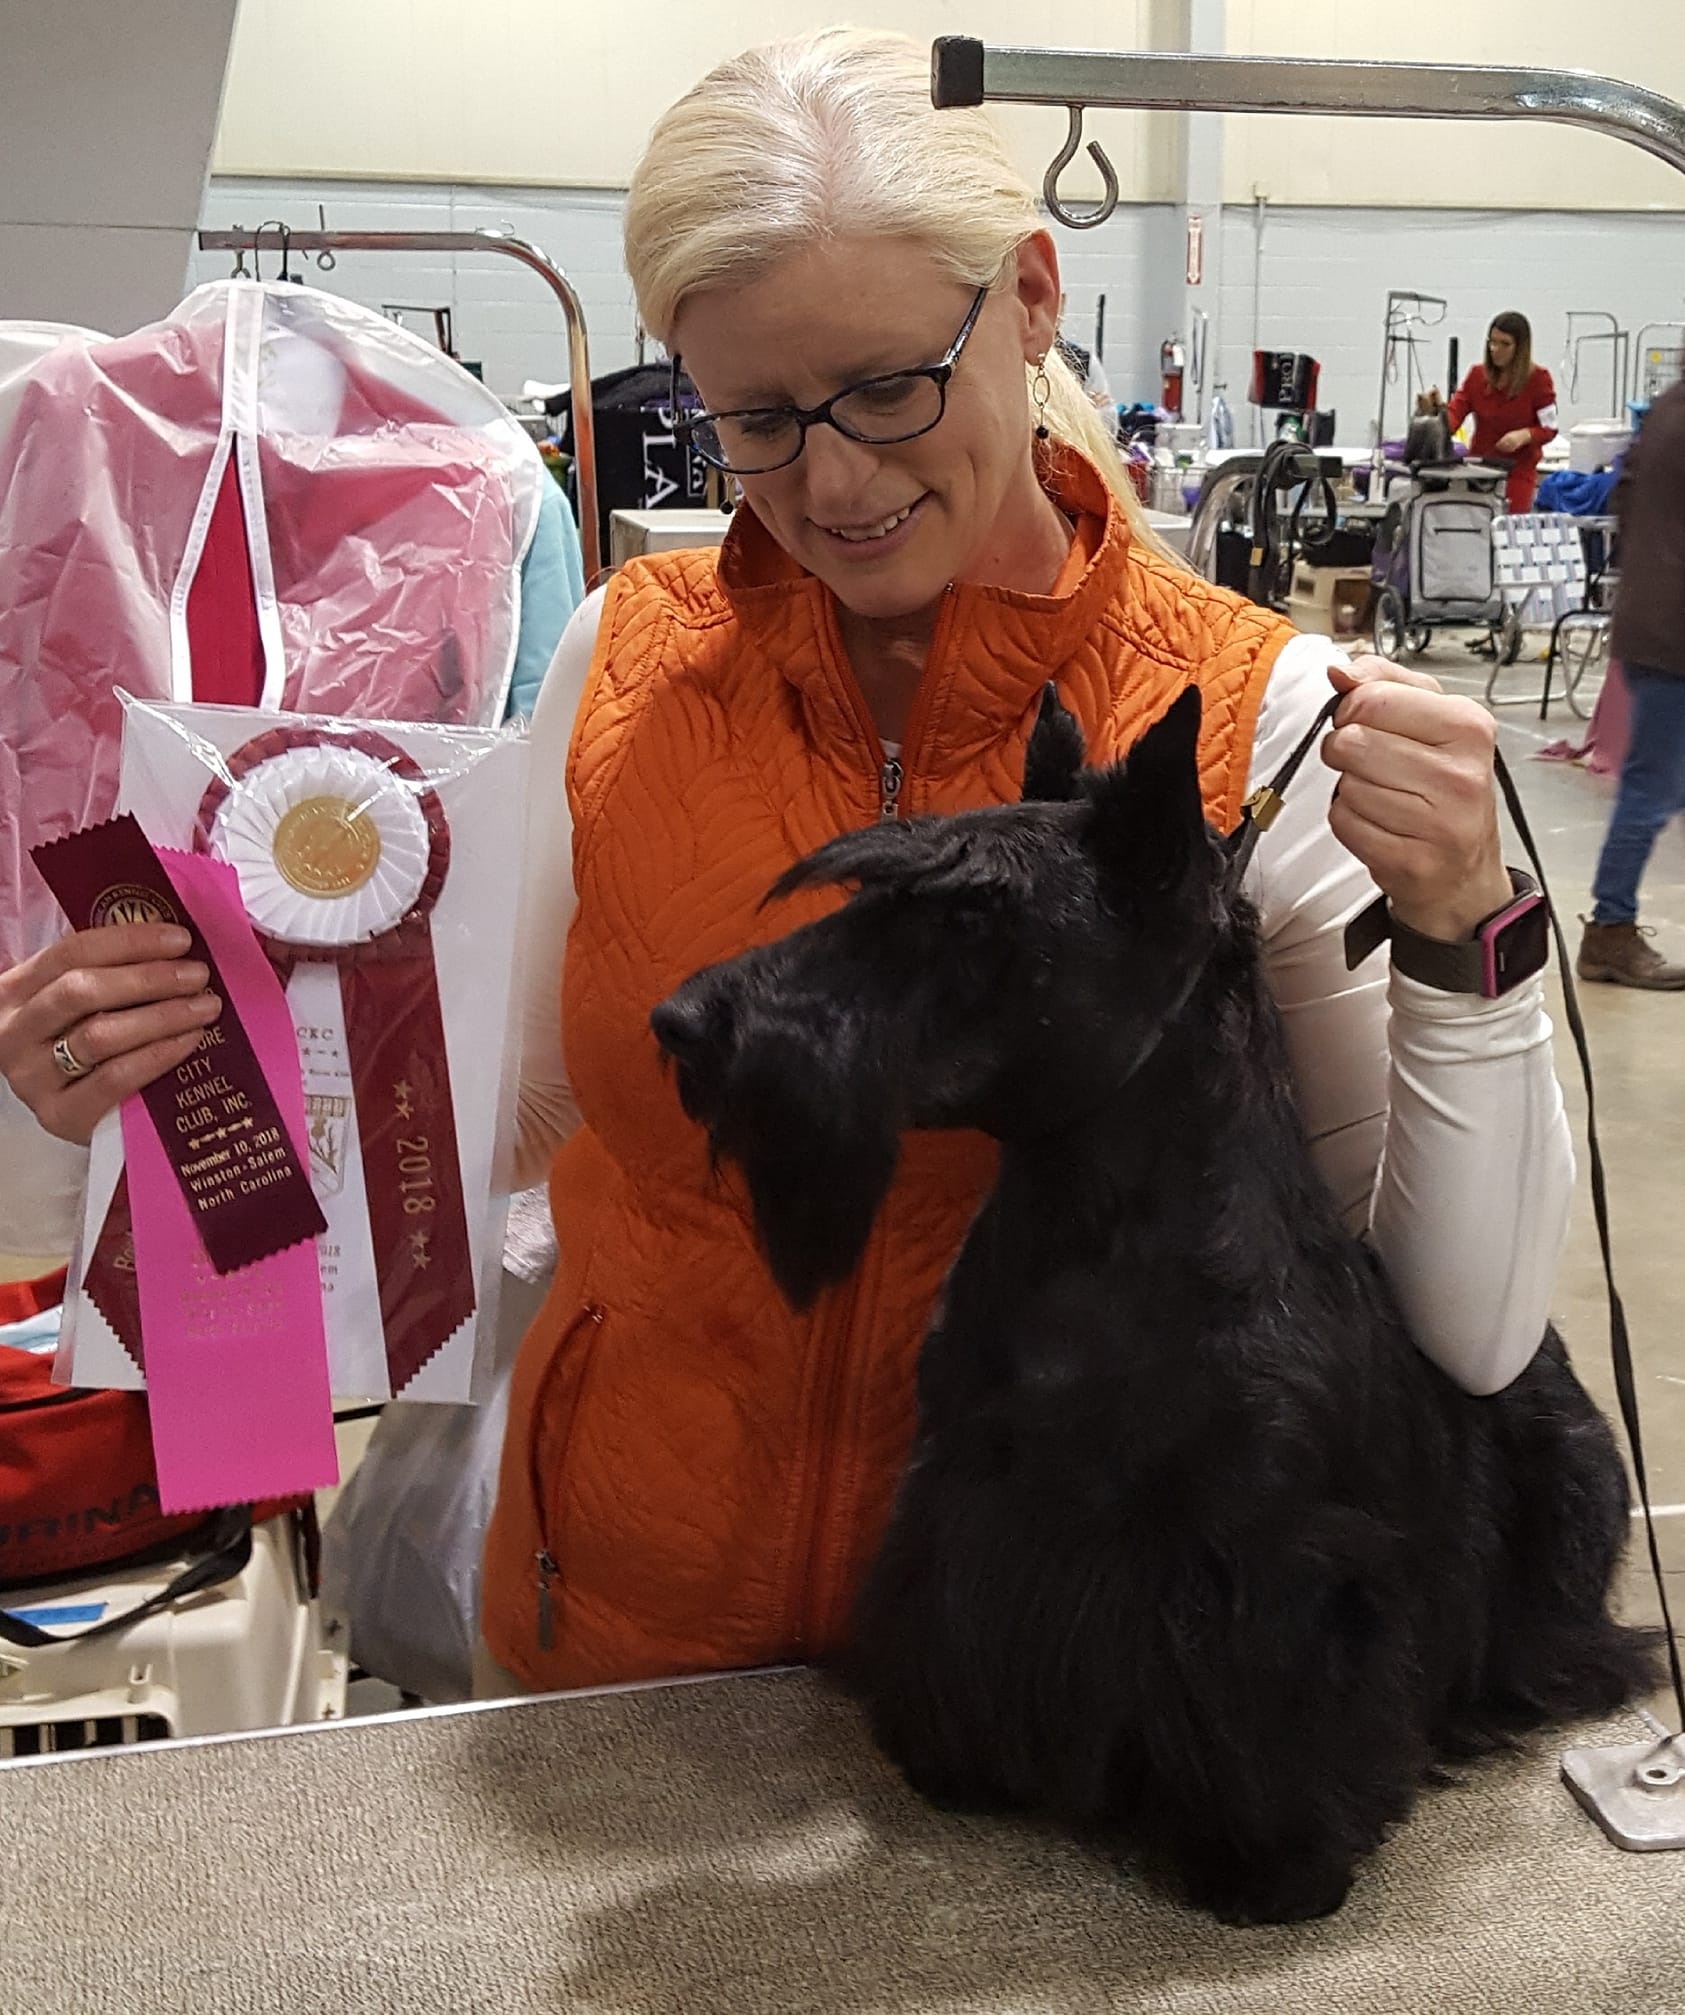 Kari Hill with Keith Keith STCWV 2018 won Best of Opposite Sex and Owner Handler and Owner Handler Group 1 o45793320_10215461030912590_4919483032924061696_o.jpg